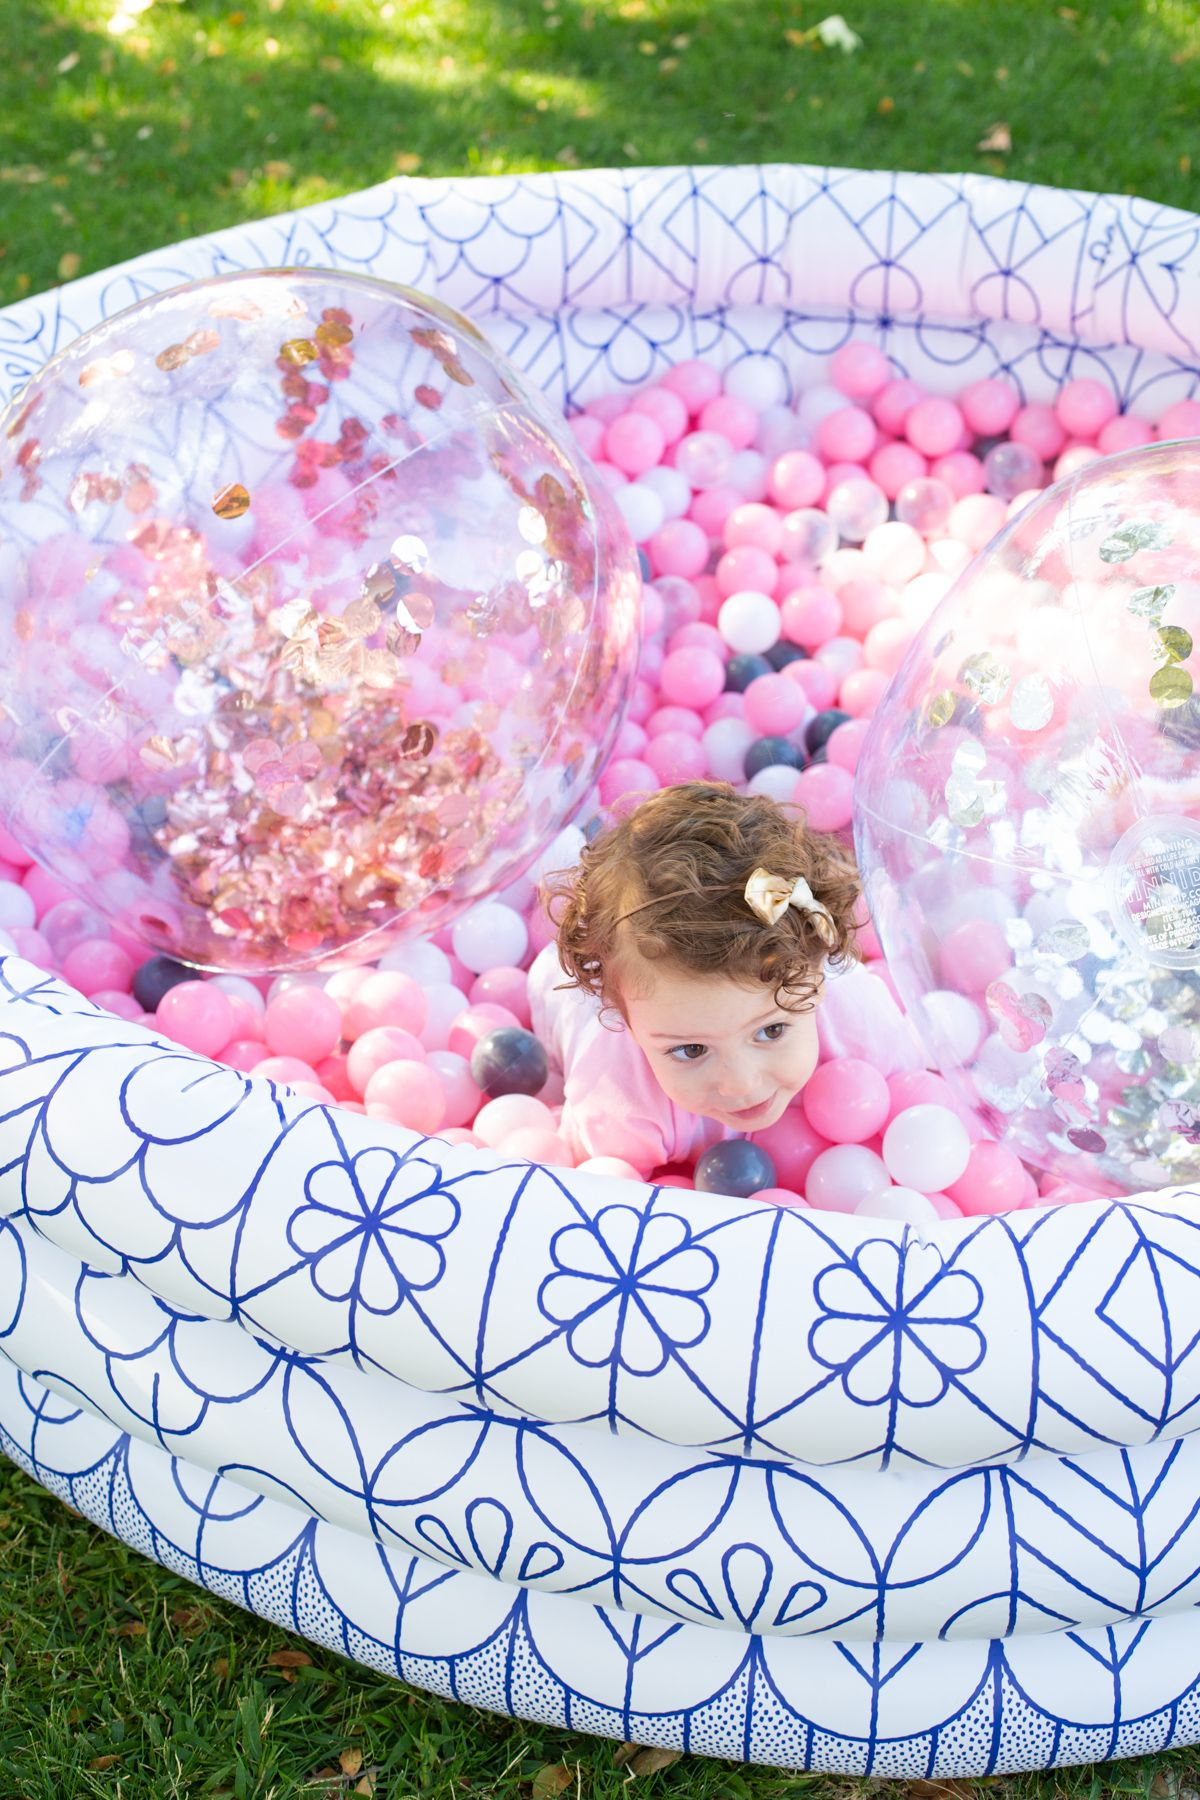 How To Make A Diy Ball Pit Tutorial From Lovely Indeed 1st Birthday Party For Girls Backyard Birthday Parties Birthday Party Activities